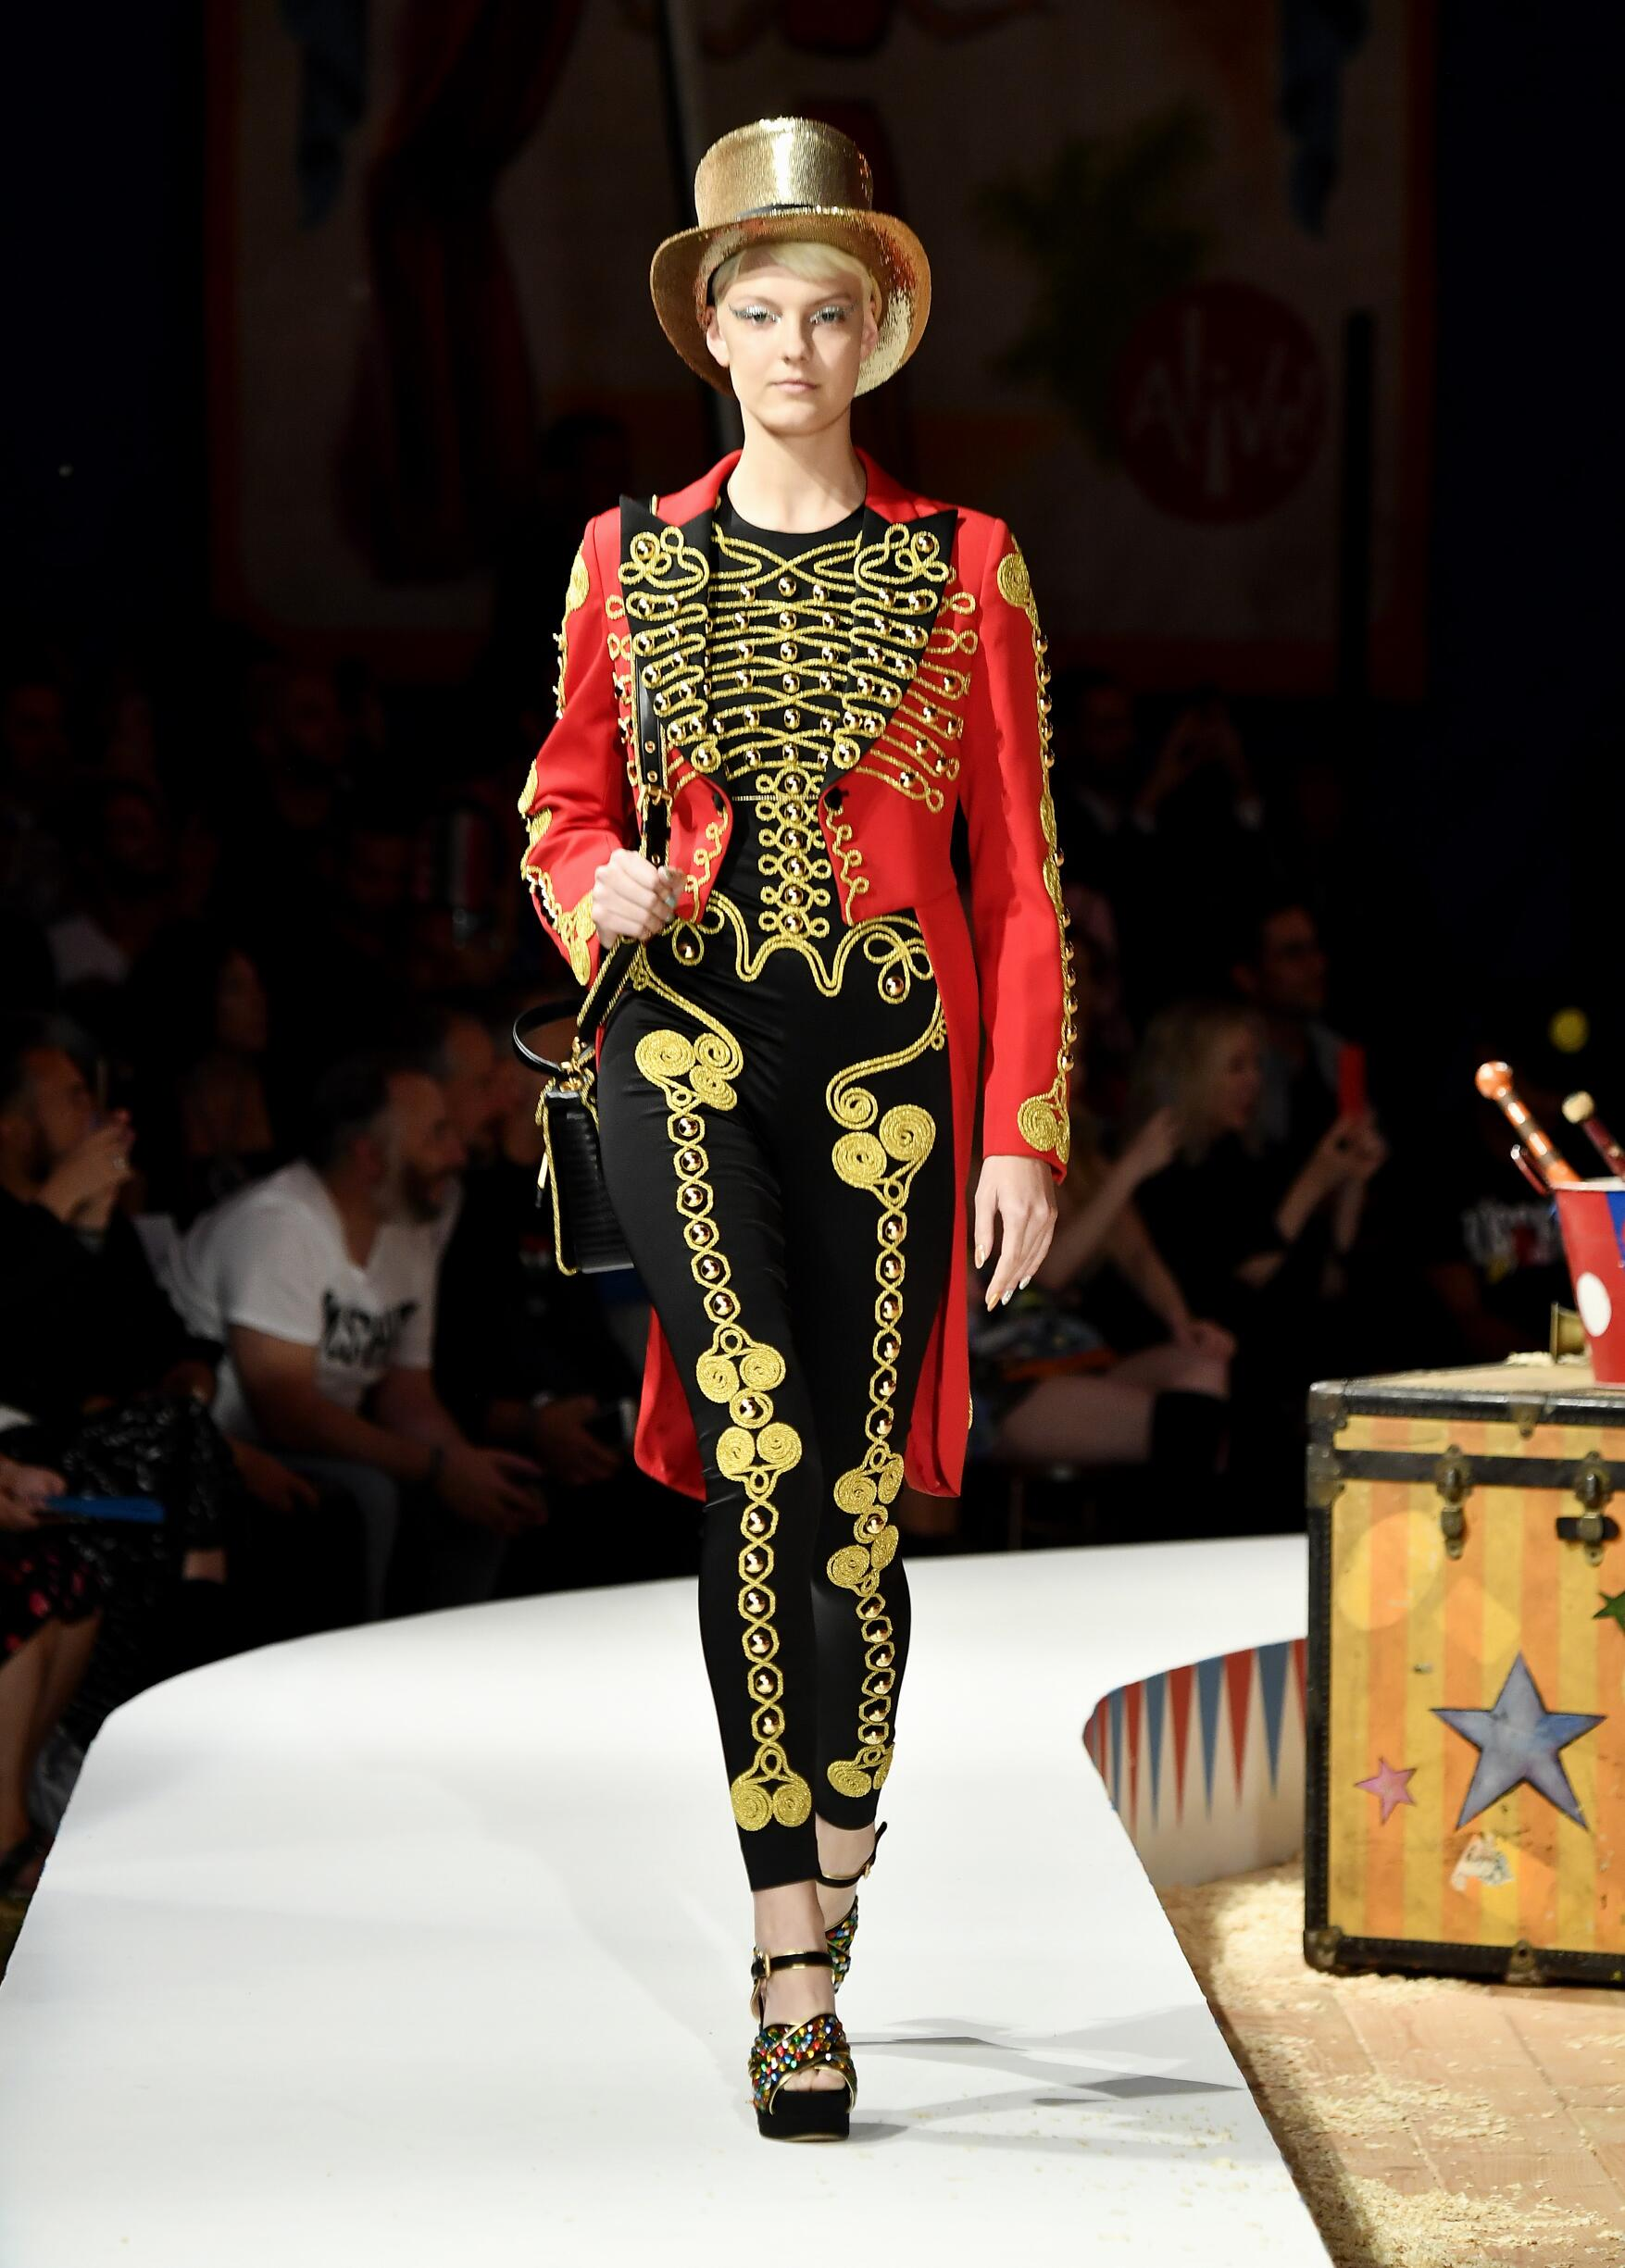 Moschino Spring Summer 2019 Menswear and Women's Resort Collection Look 1 Los Angeles